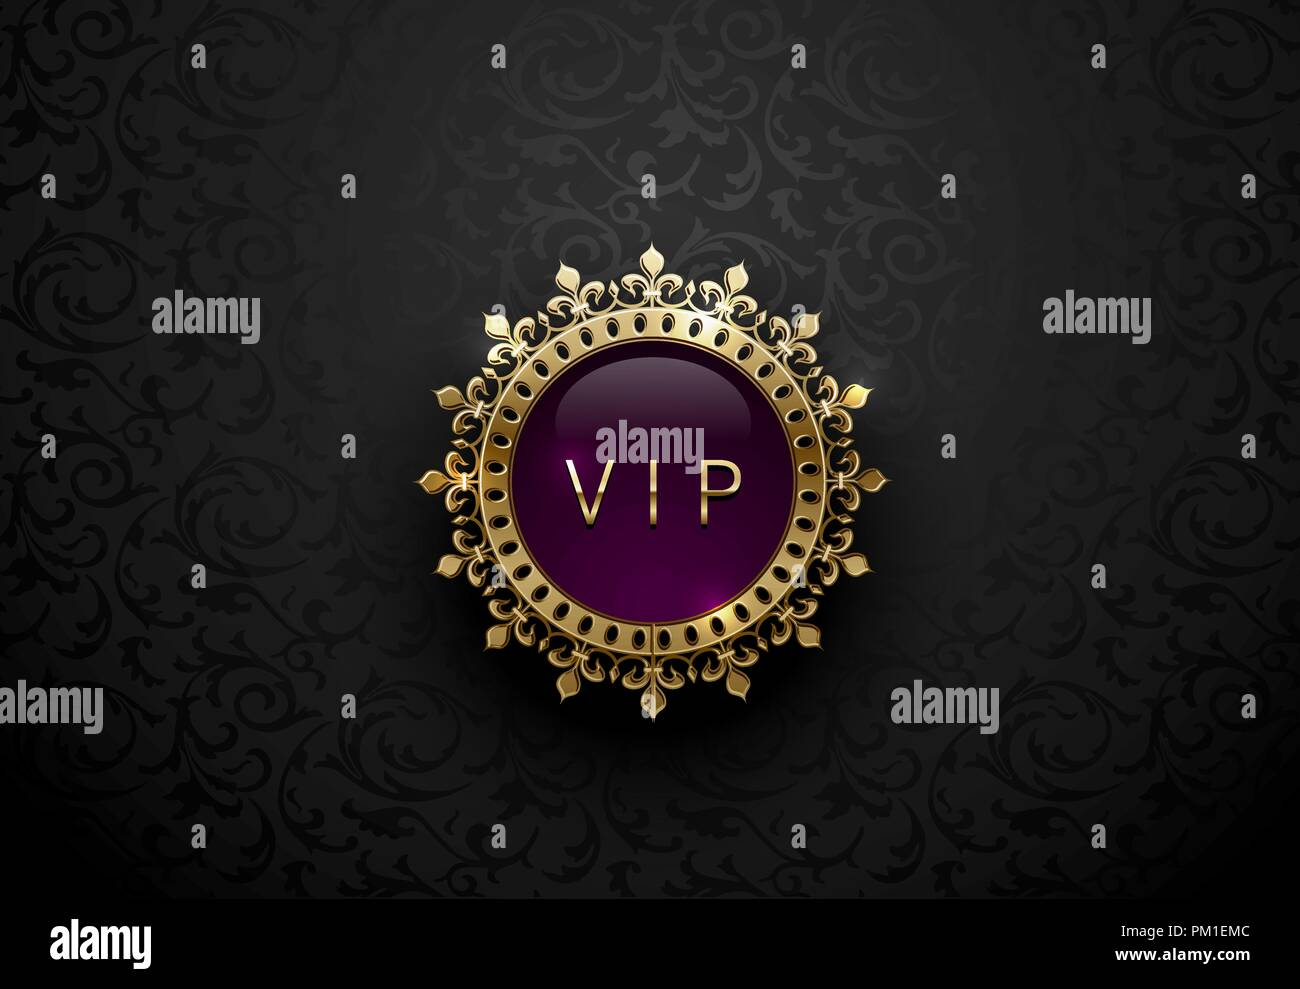 Vip Purple Label With Round Golden Ring Frame Crown On Black Floral Background Dark Glossy Royal Premium Template Vector Luxury Illustration